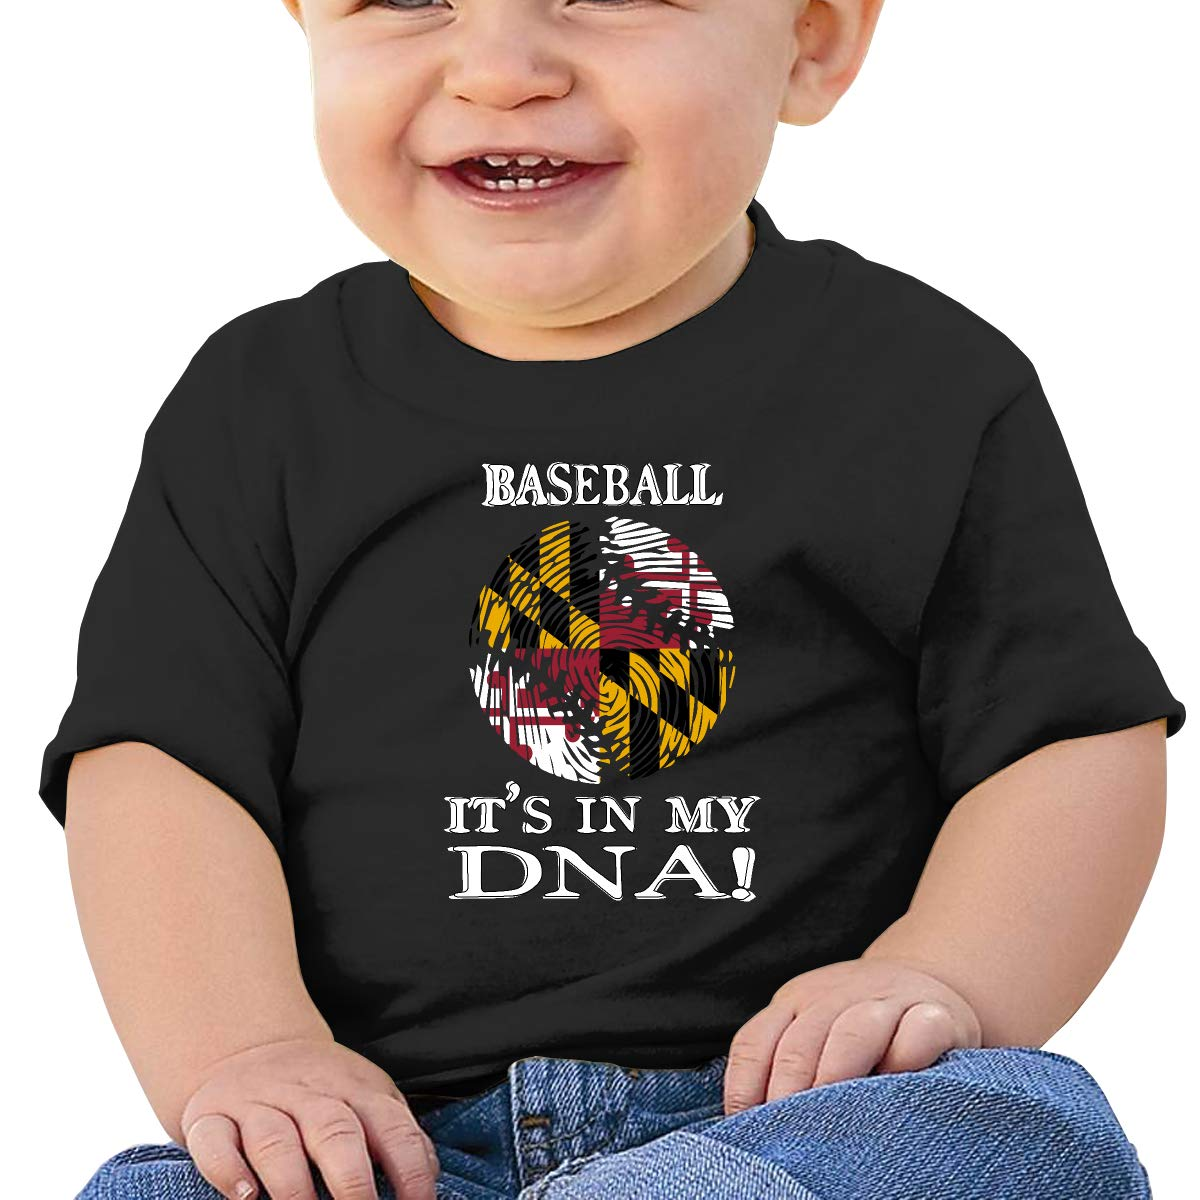 ZUGFGF-S3 Maryland Flag Baseball DNA Toddler Baby Newborn Short Sleeve Tee Shirt 6-24 Month Cotton Tops